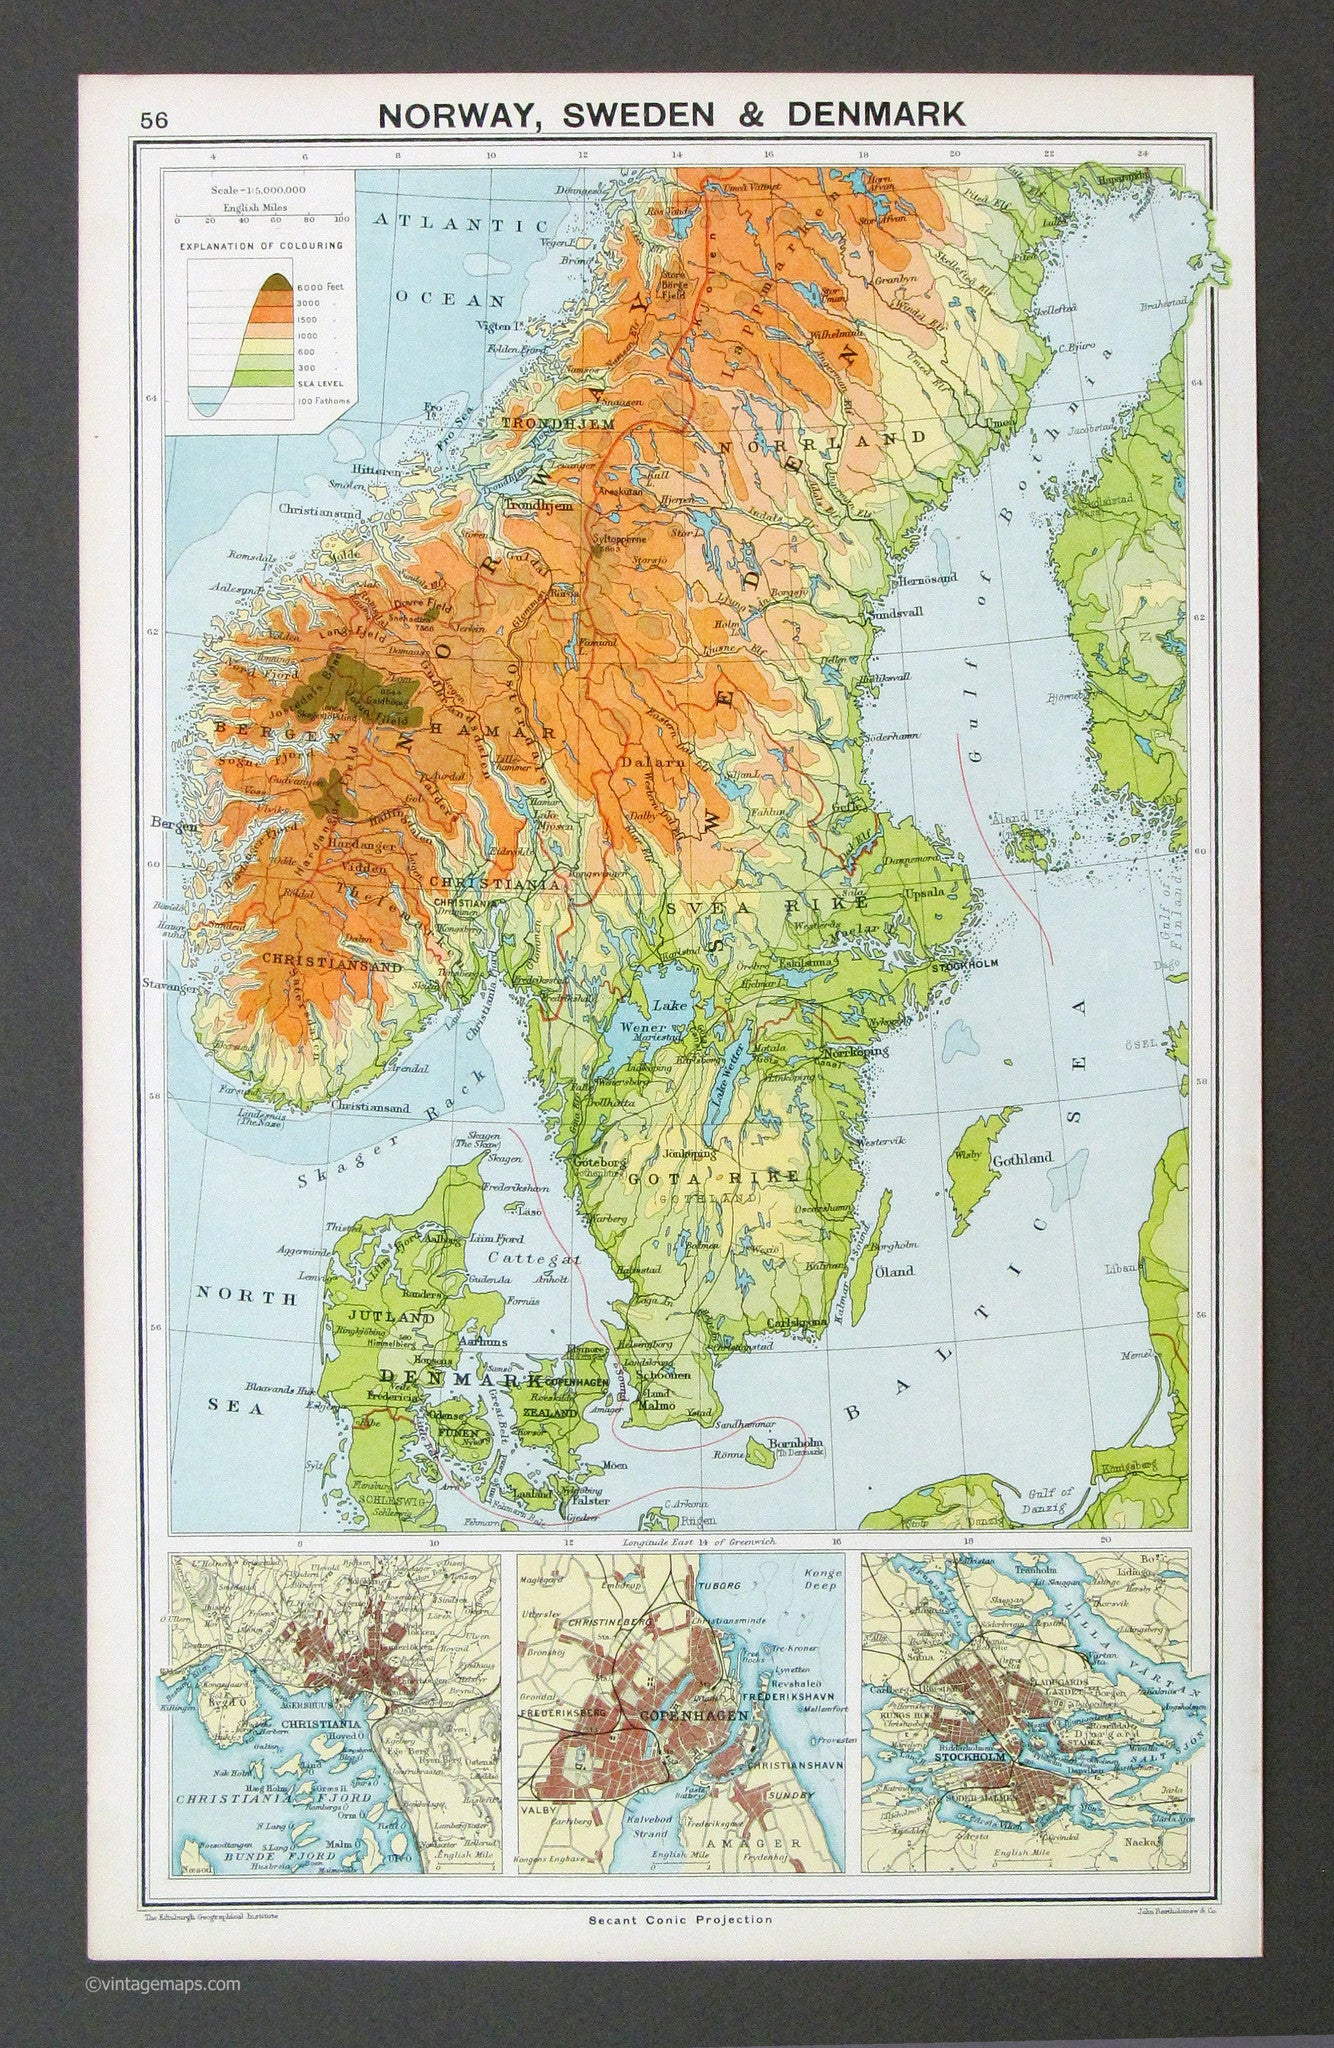 Denmark Topographic Map.Norway Sweden Denmark 1917 Vintage Maps